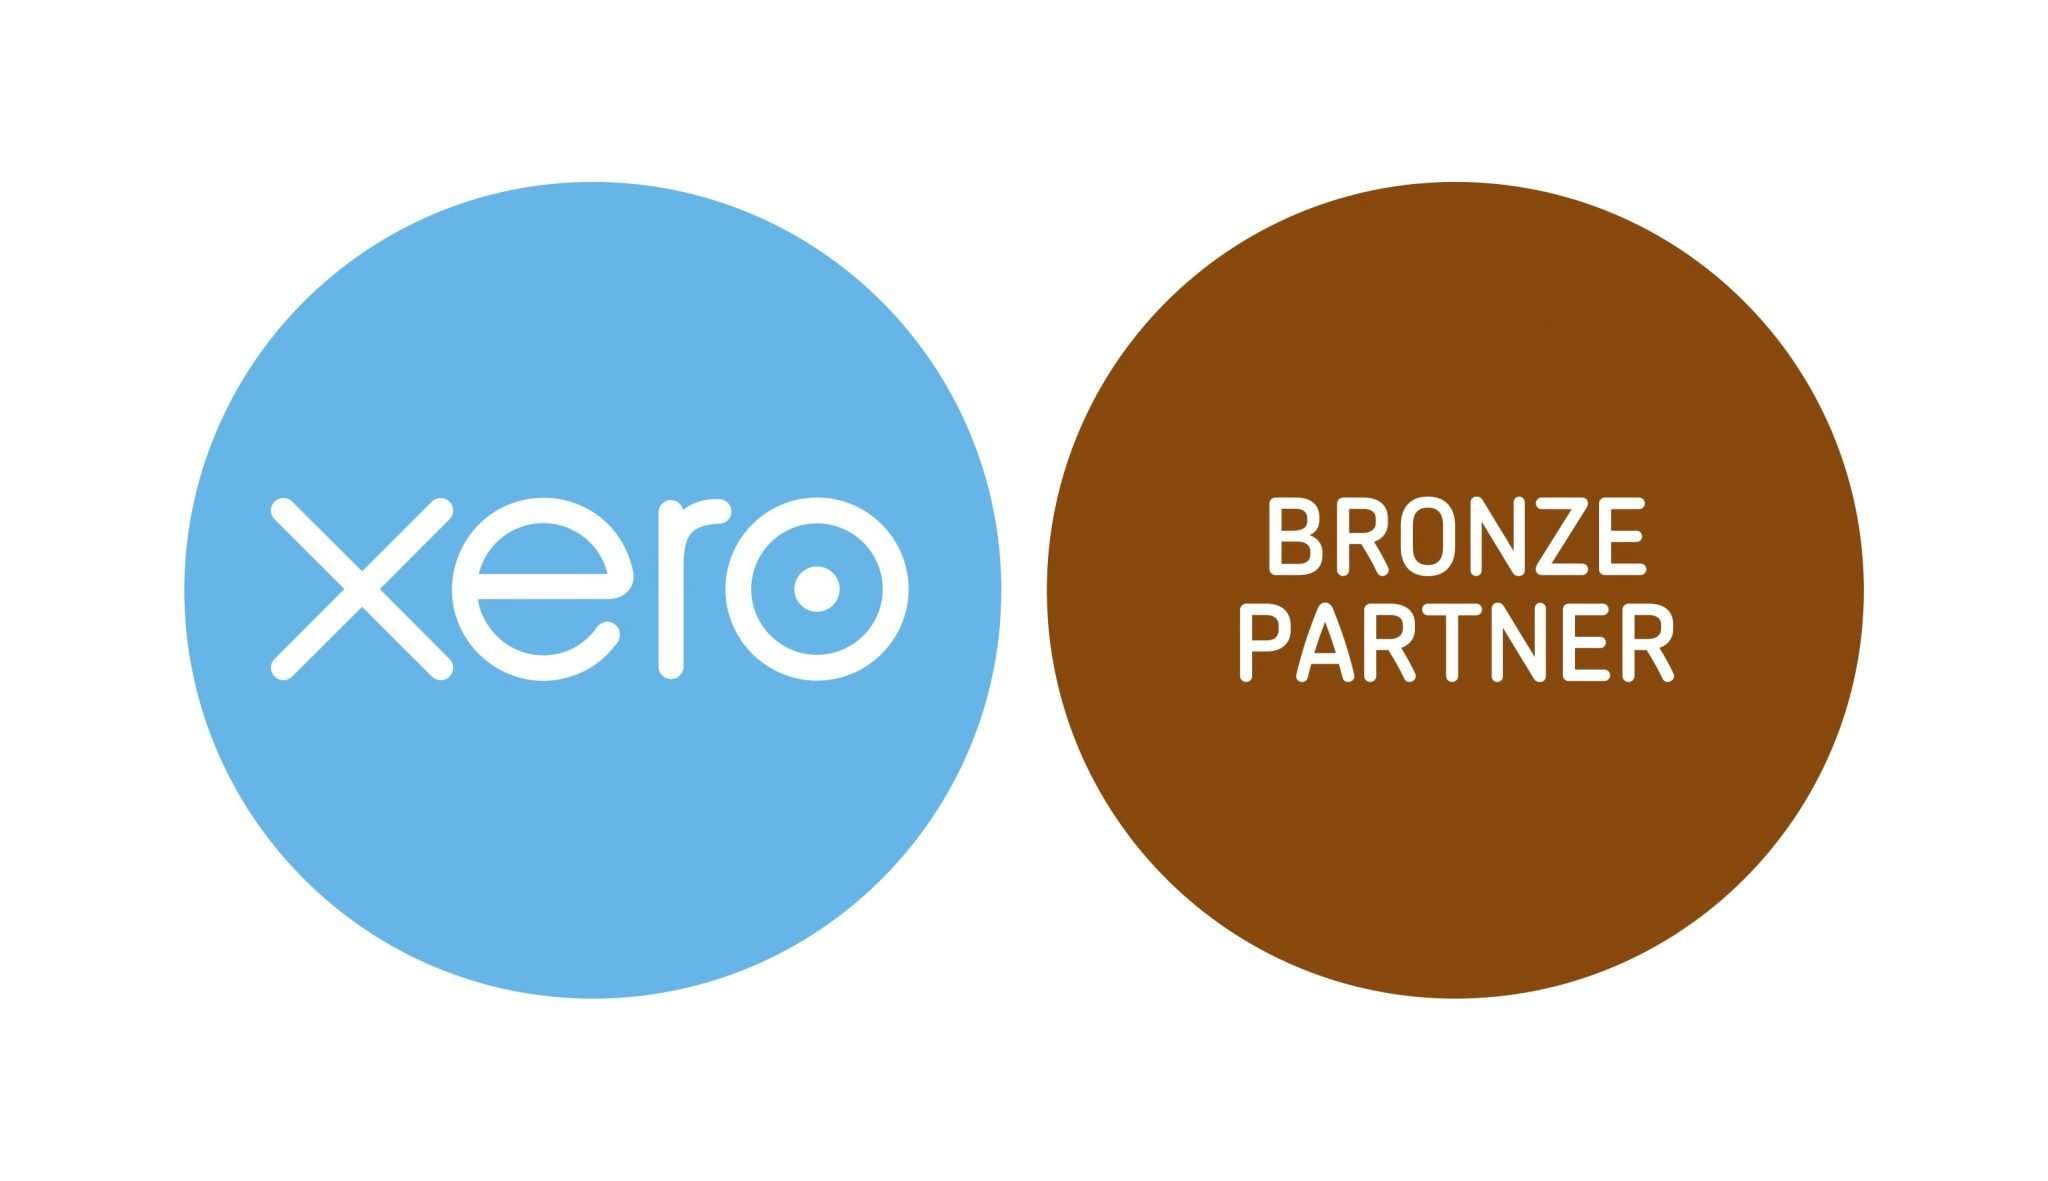 xero-bronze-partner-badge